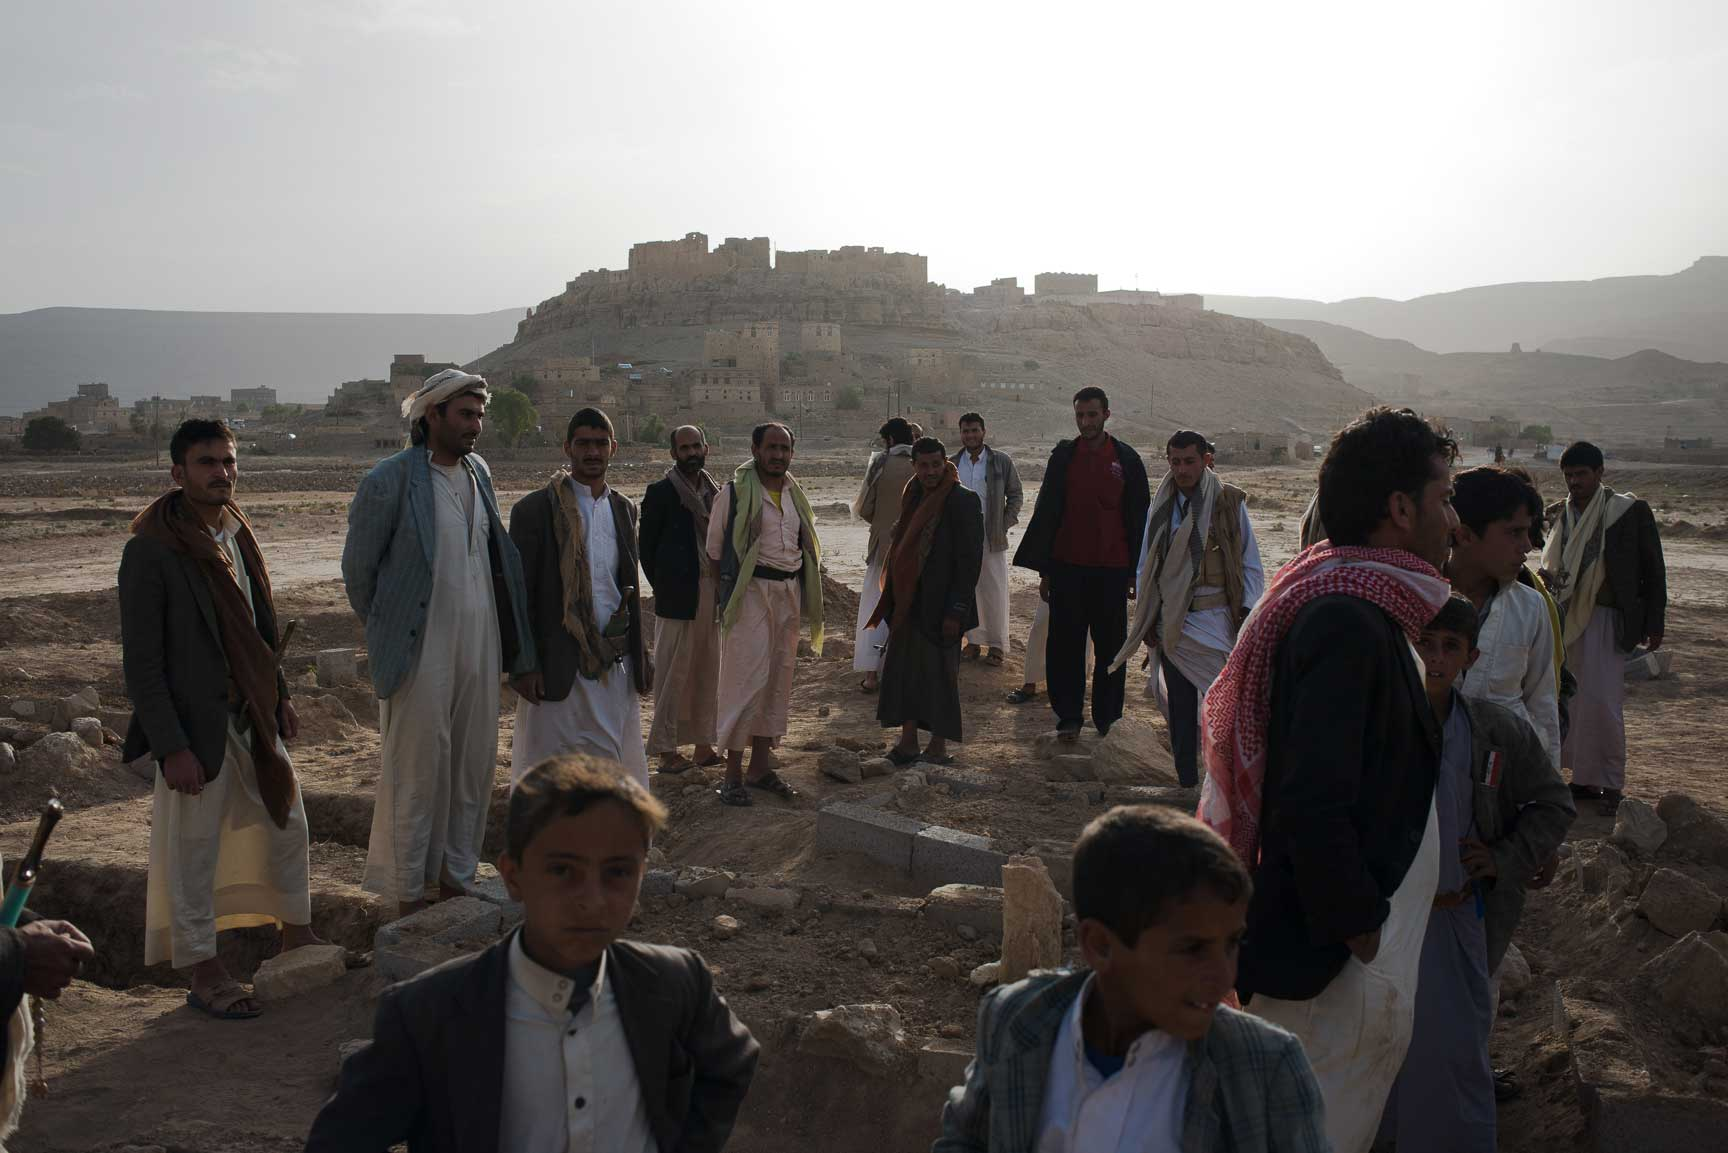 Yemeni men and boys visit the new cemetery in Al Joob, dug specifically to accommodate the 30 men, women and children who were killed between two strikes on a public market and along a roadside on July 7, 2015. Some had already been buried, but other graves lay empty, waiting for the bodies to come from the morgue in Amran or Sanaa. More hopeful cases were sent to the better equipped hospitals in Sanaa, but most died on the way there.